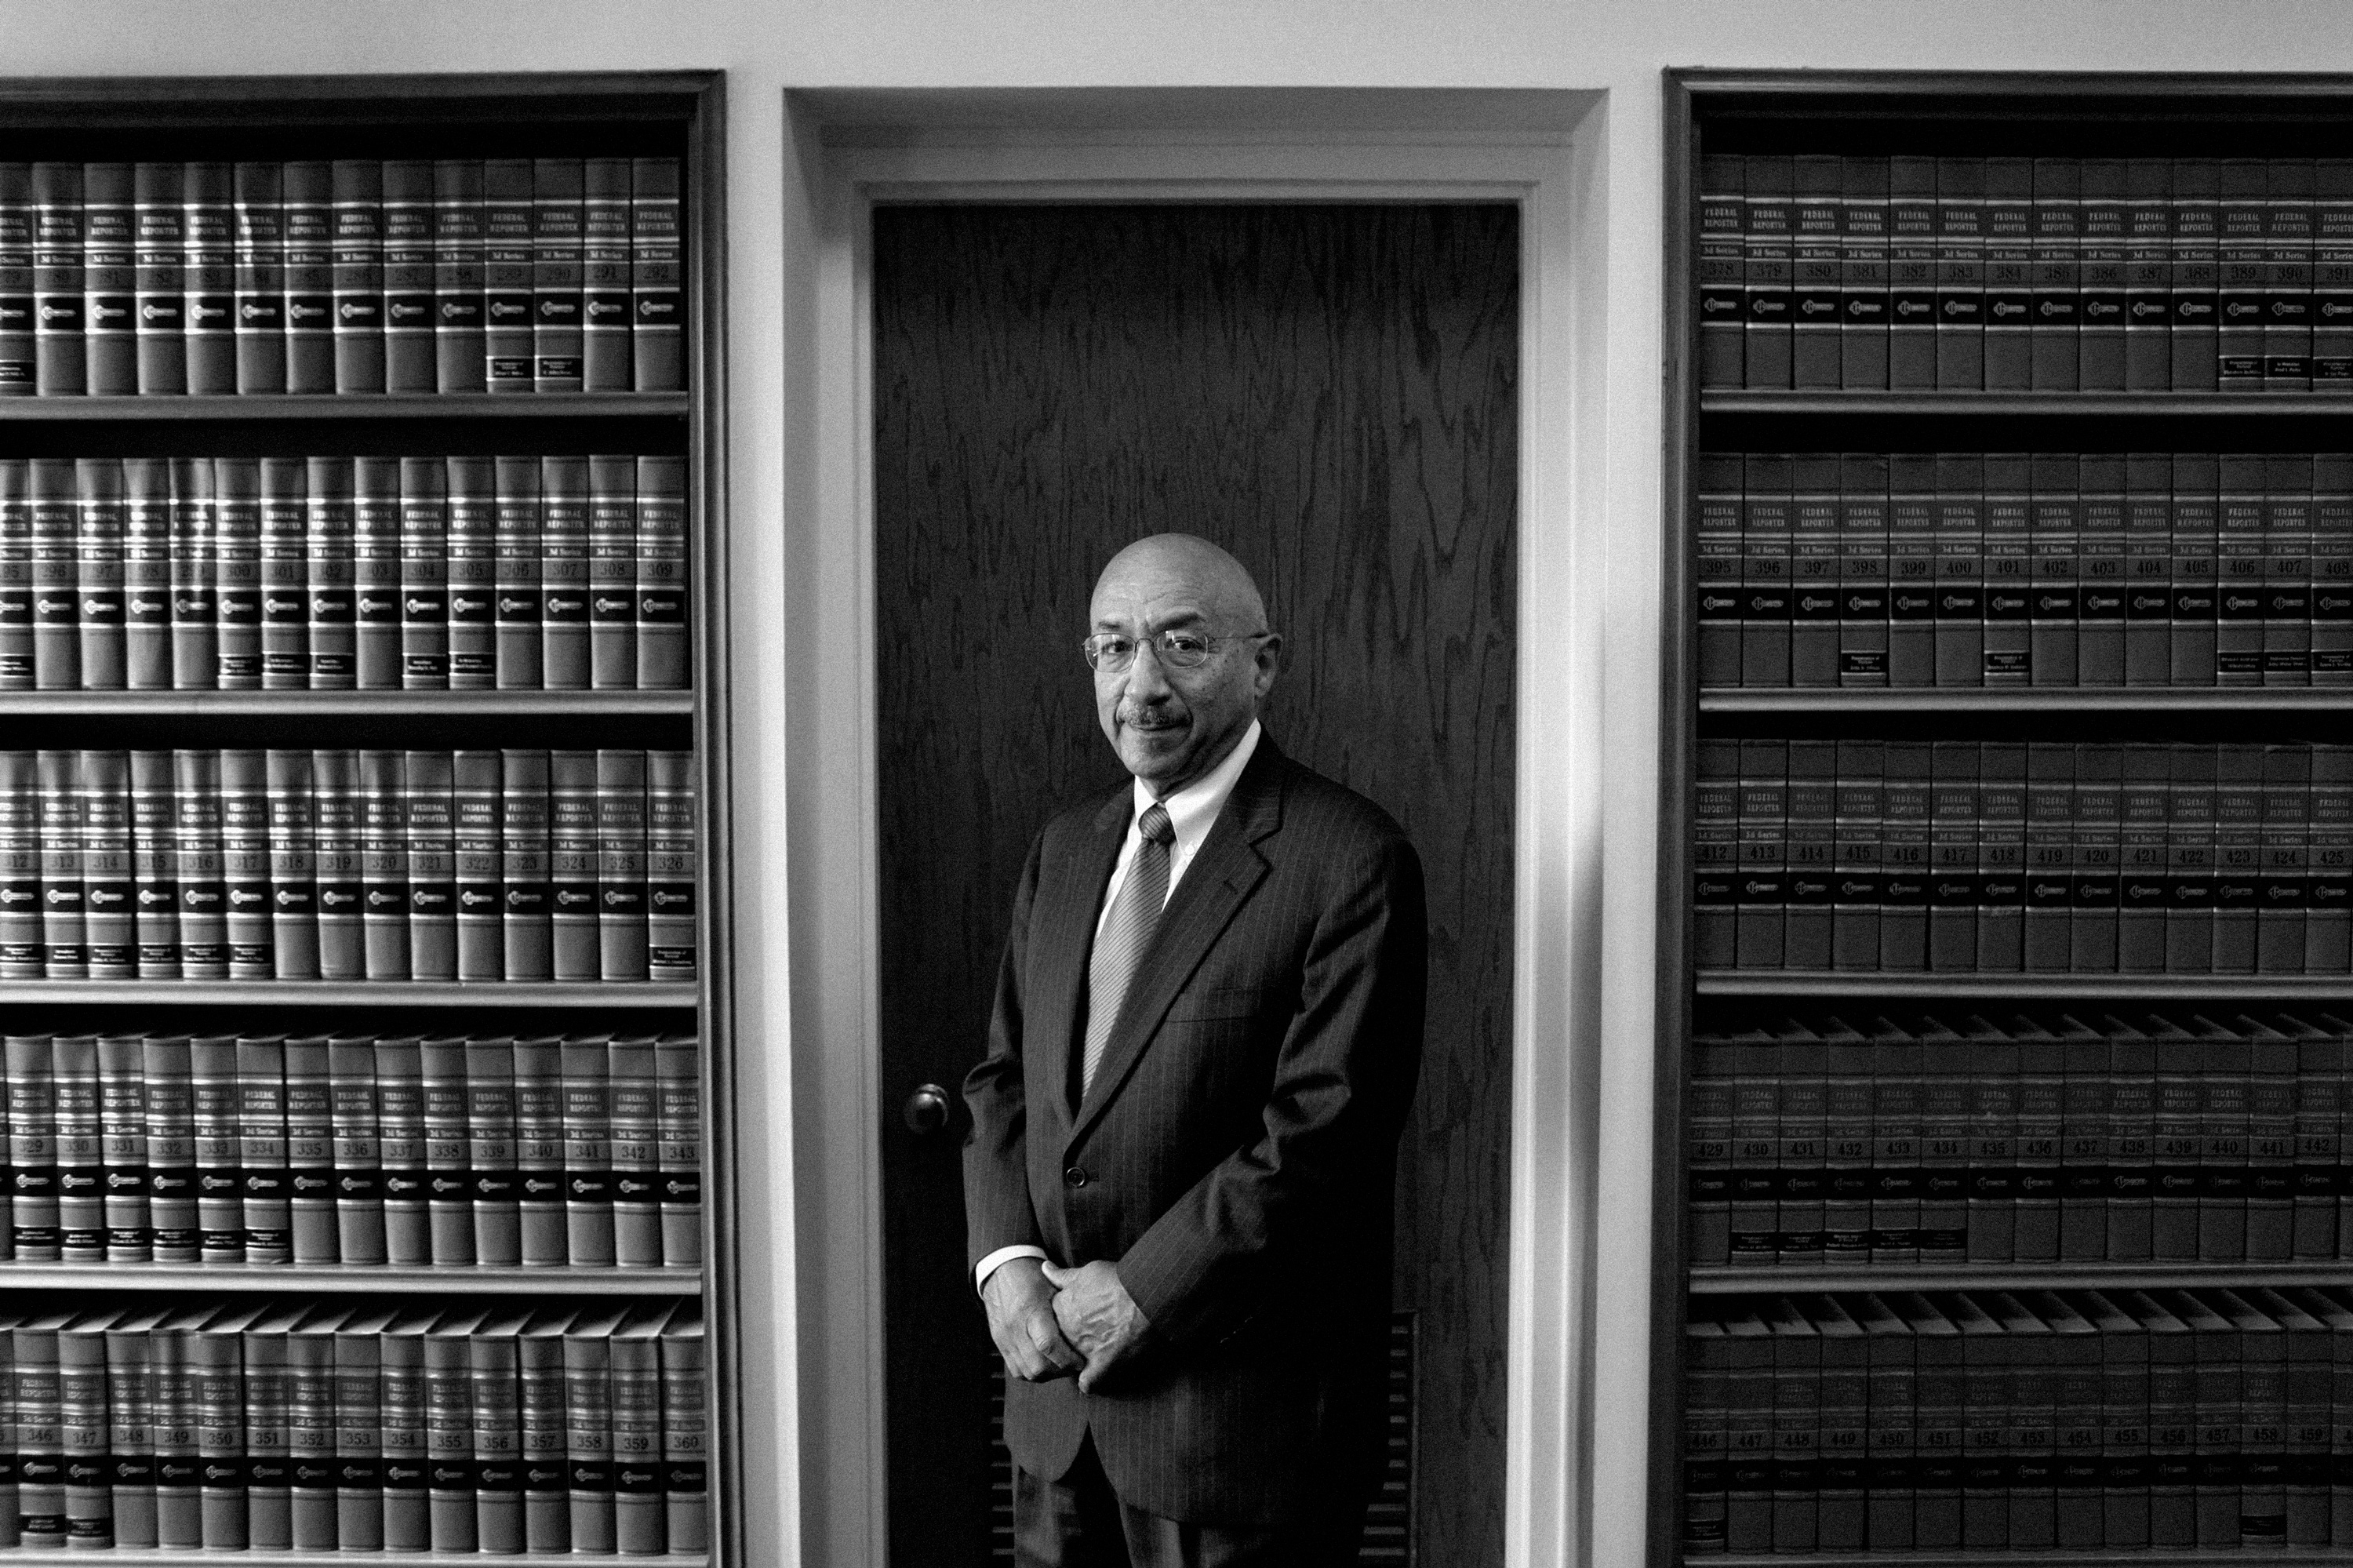 Harry Edwards, a senior judge of the Court of Appeals for the District of Columbia, at the U.S. Court of Appeals Courthouse in Washington, Sept. 17, 2012. As the financial industry confronts a wave of new government regulations, it has sympathetic ears in a key federal appeals court. (Luke Sharrett/The New York Times)